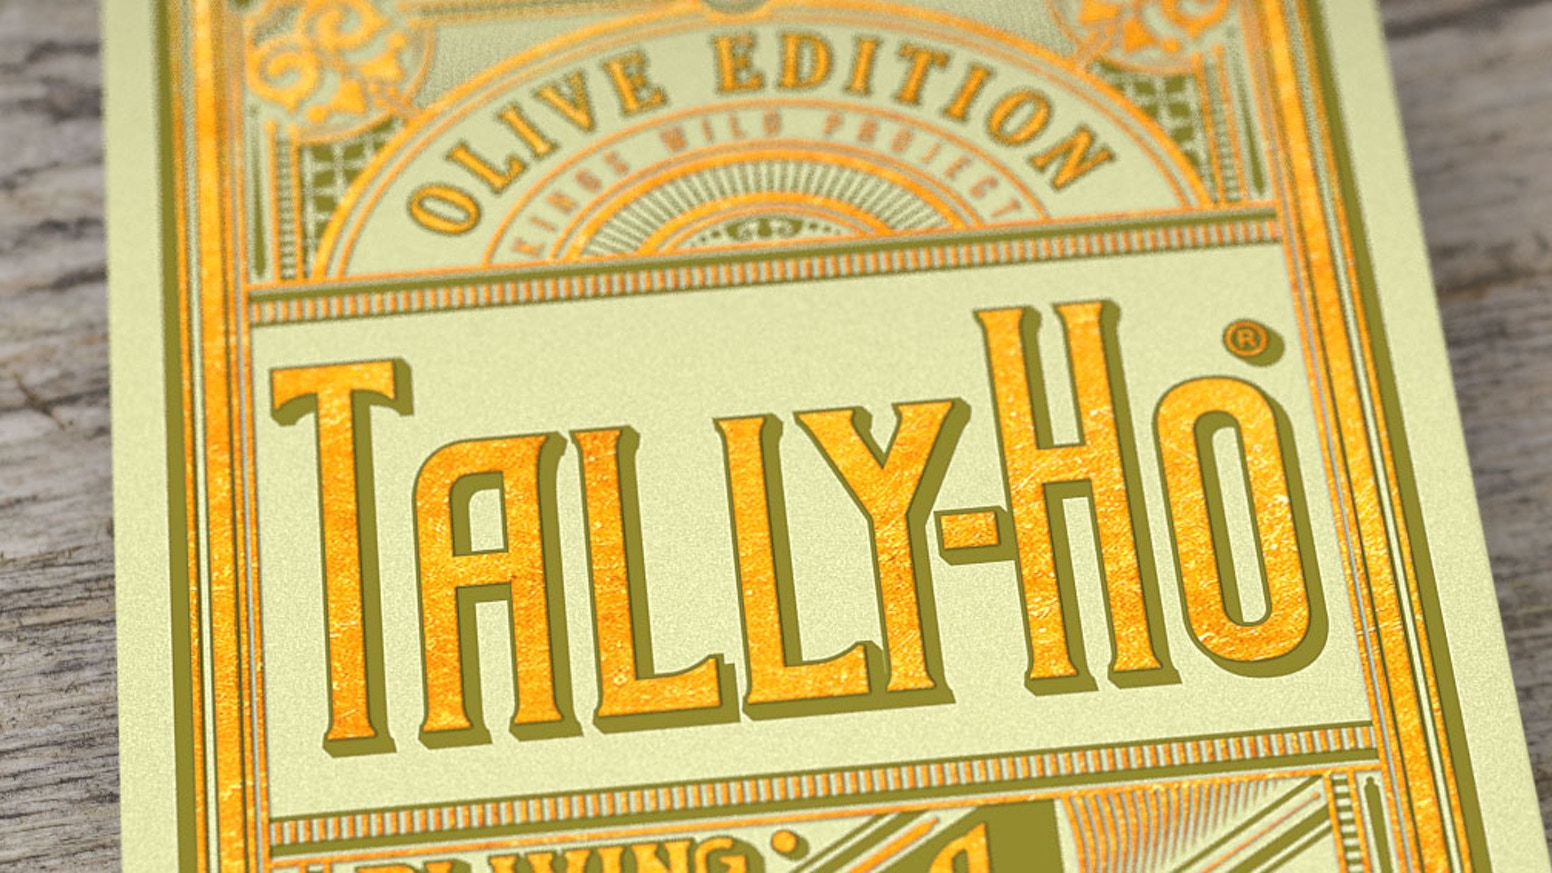 The Olive Tally Hos are the 5th deck in a series of limited edition playing cards designed by Jackson Robinson.